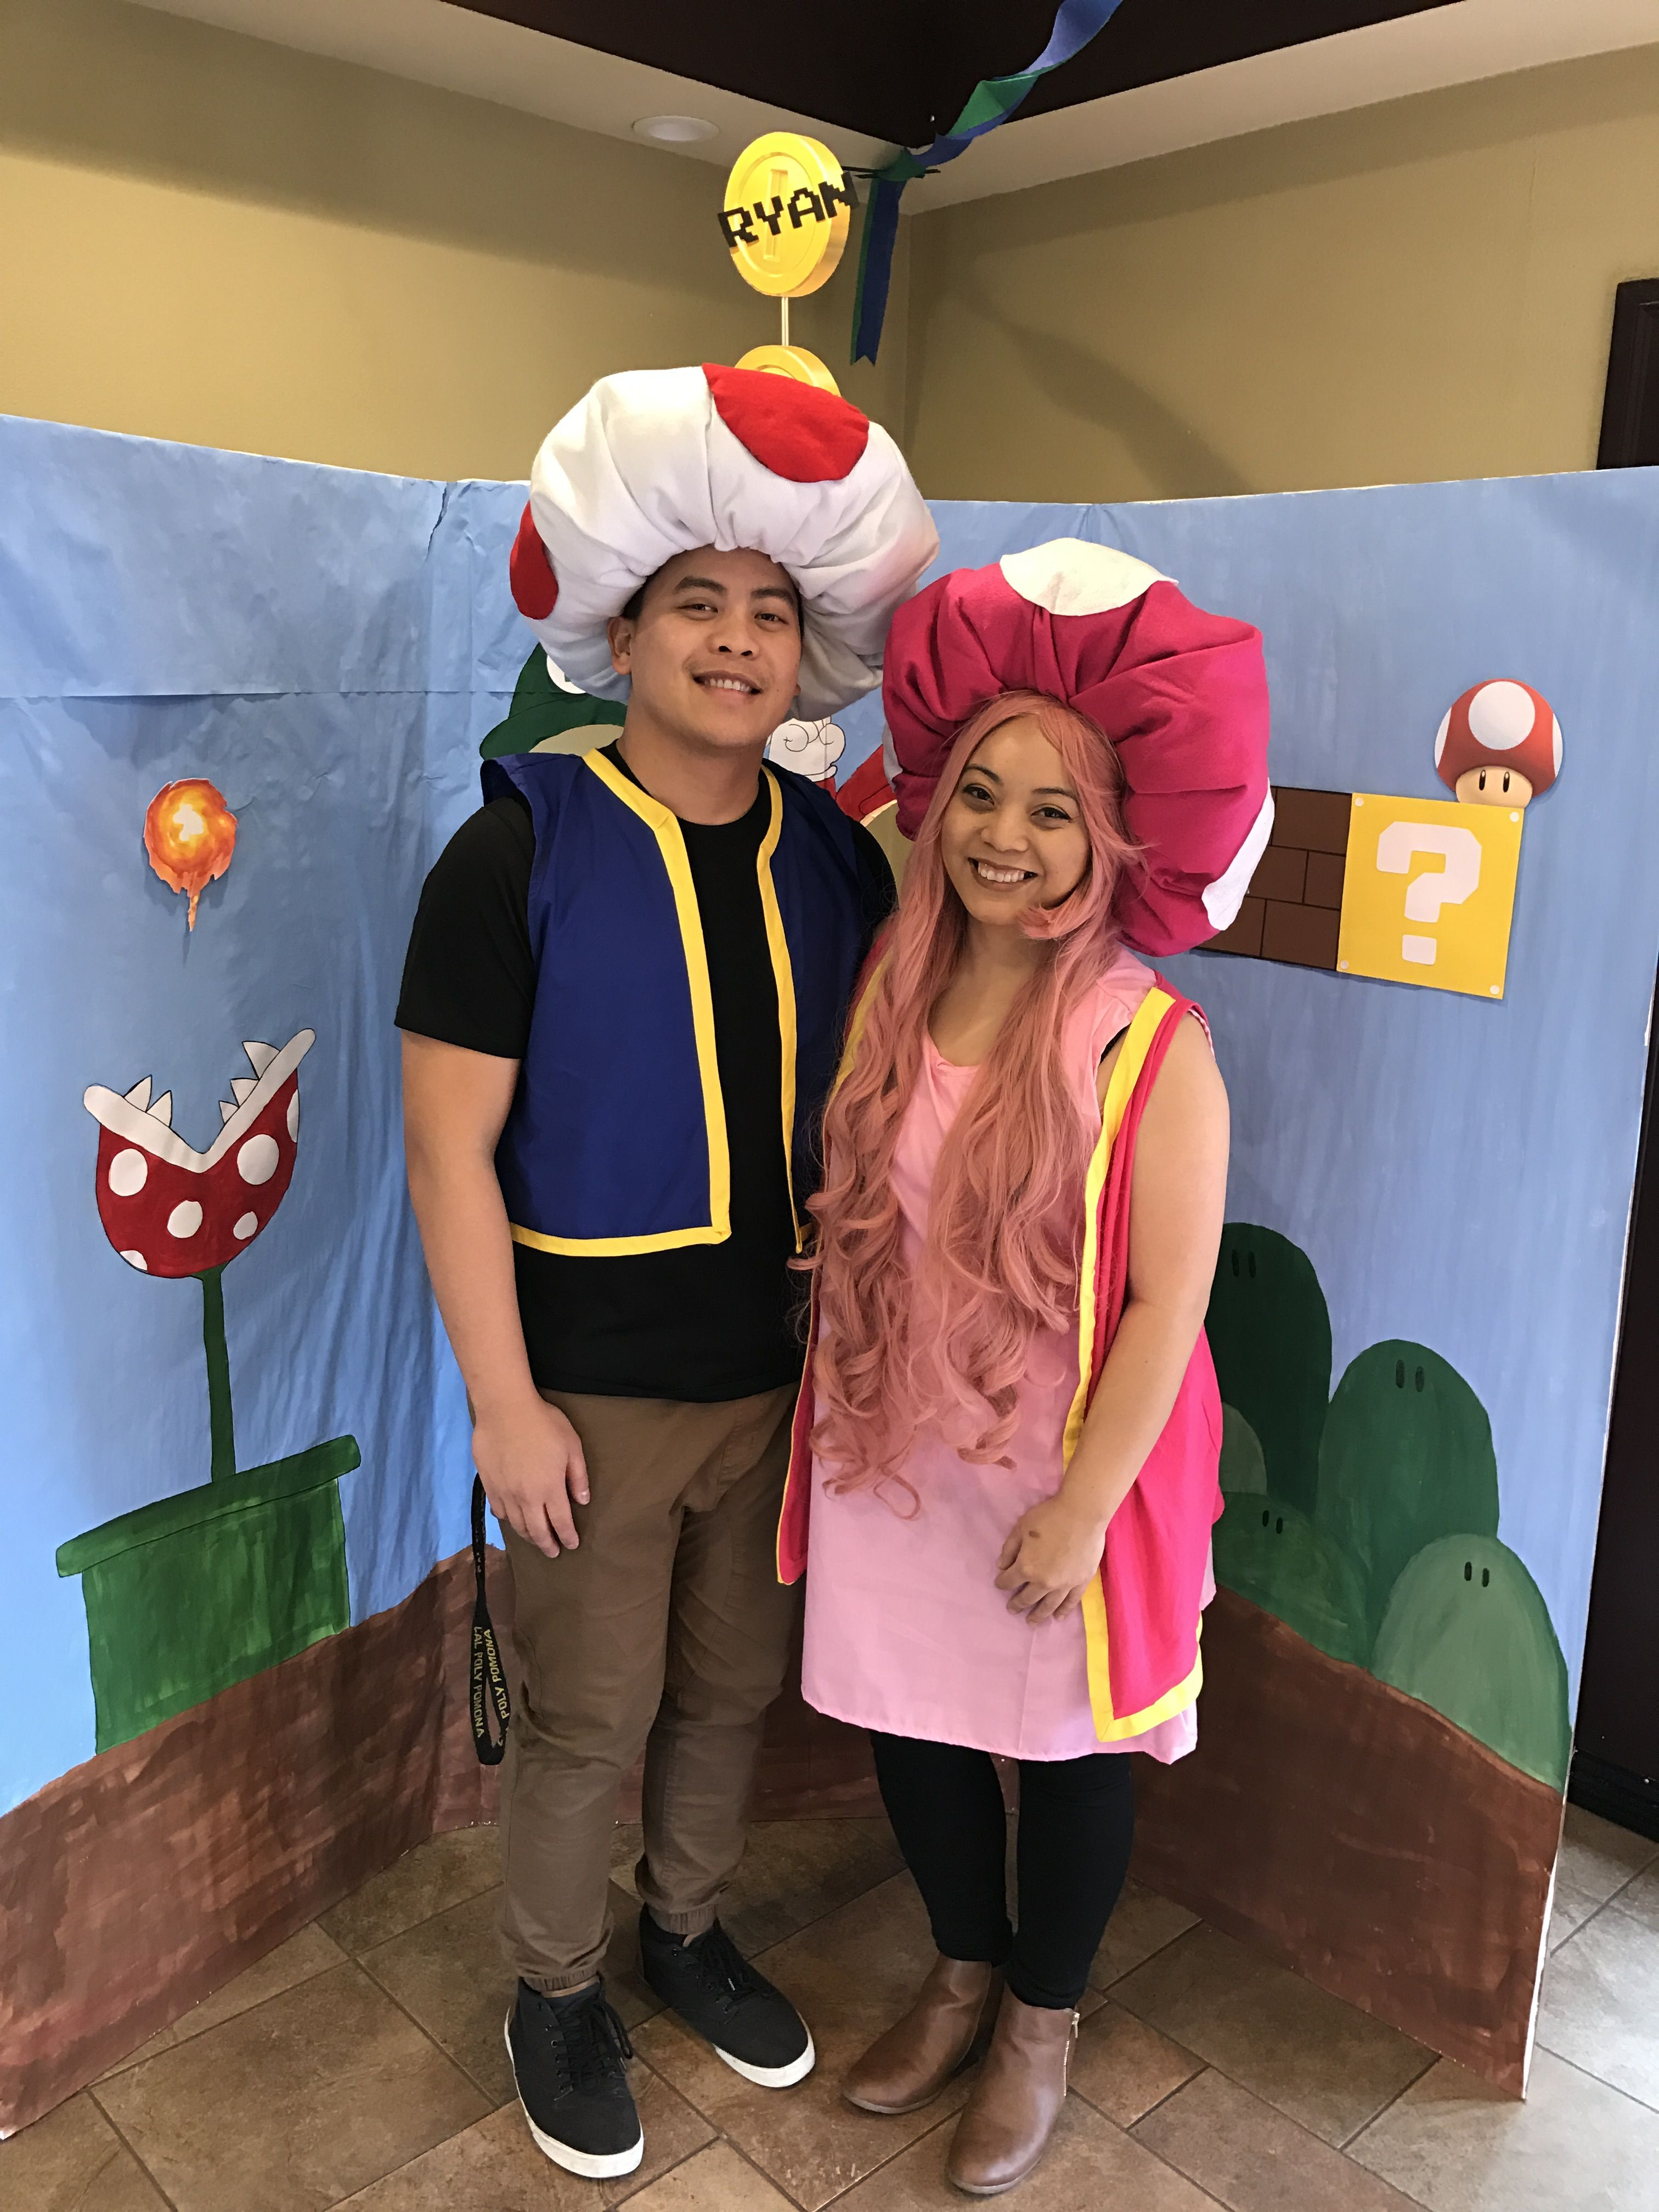 DIY Toad and Toadette costumes | My creations in 2019 ...